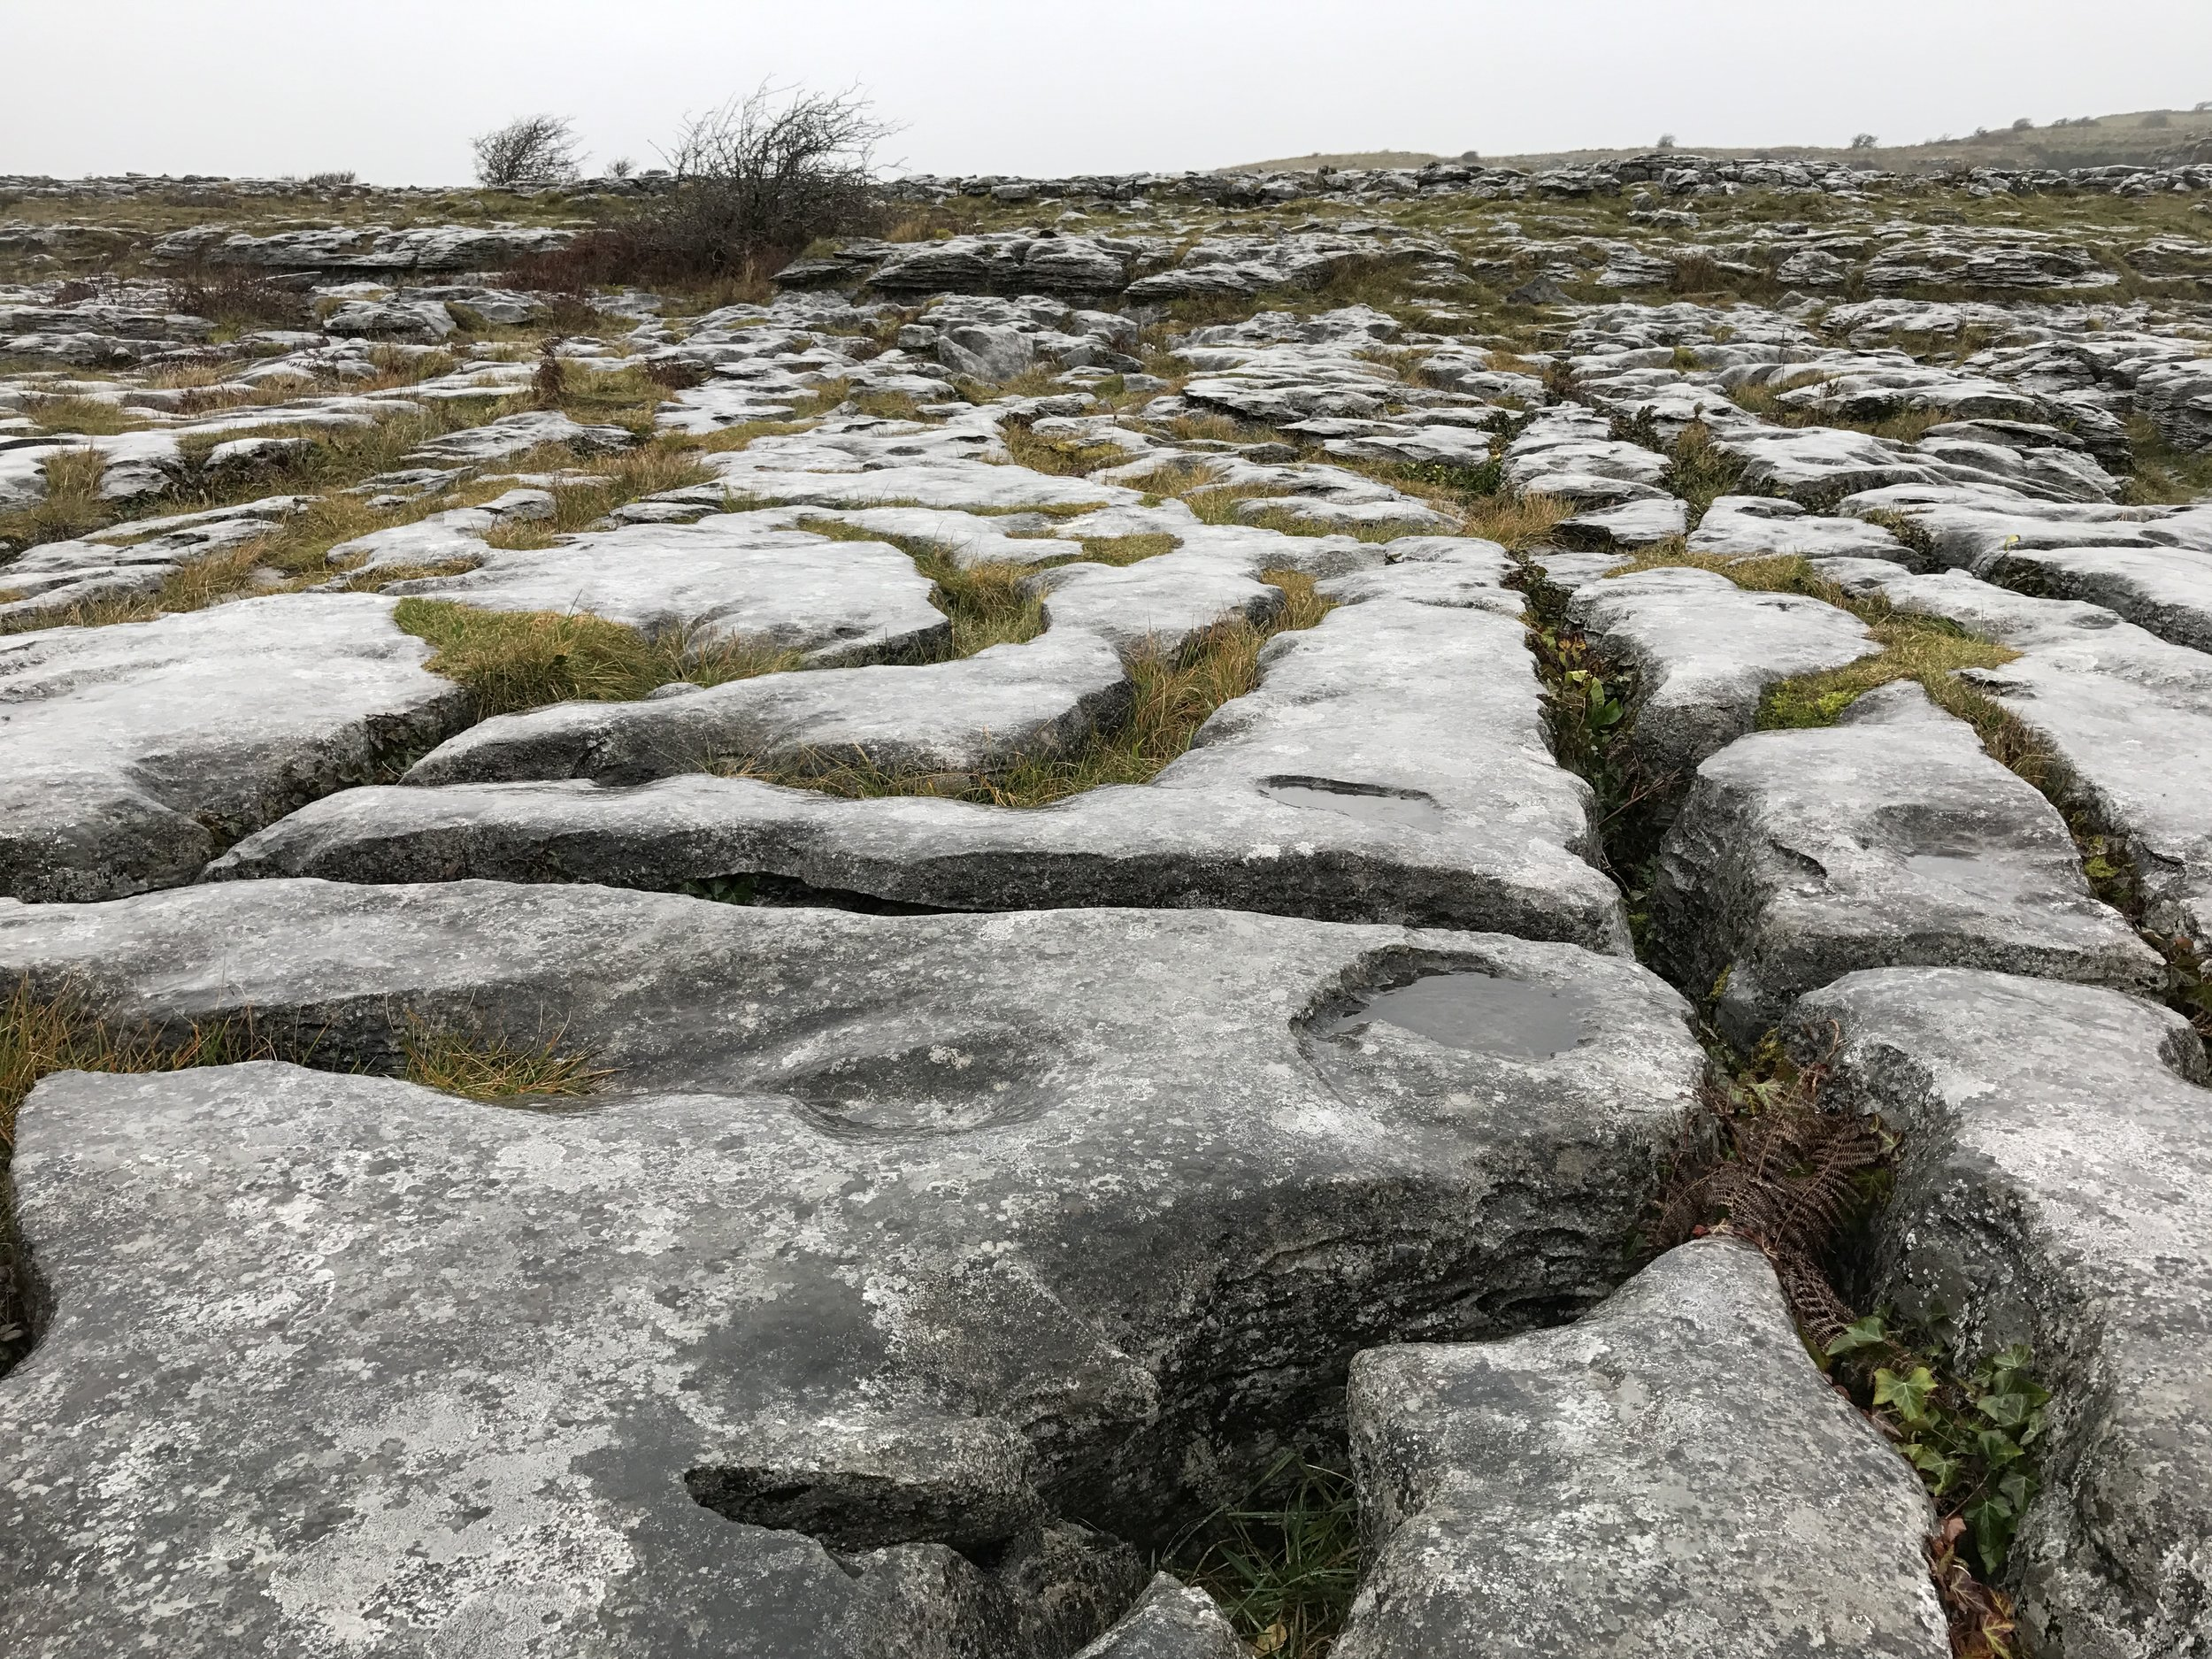 Poulnabrone is located in the Burren portion of Ireland, which has geologic features unlike the rest of the island.